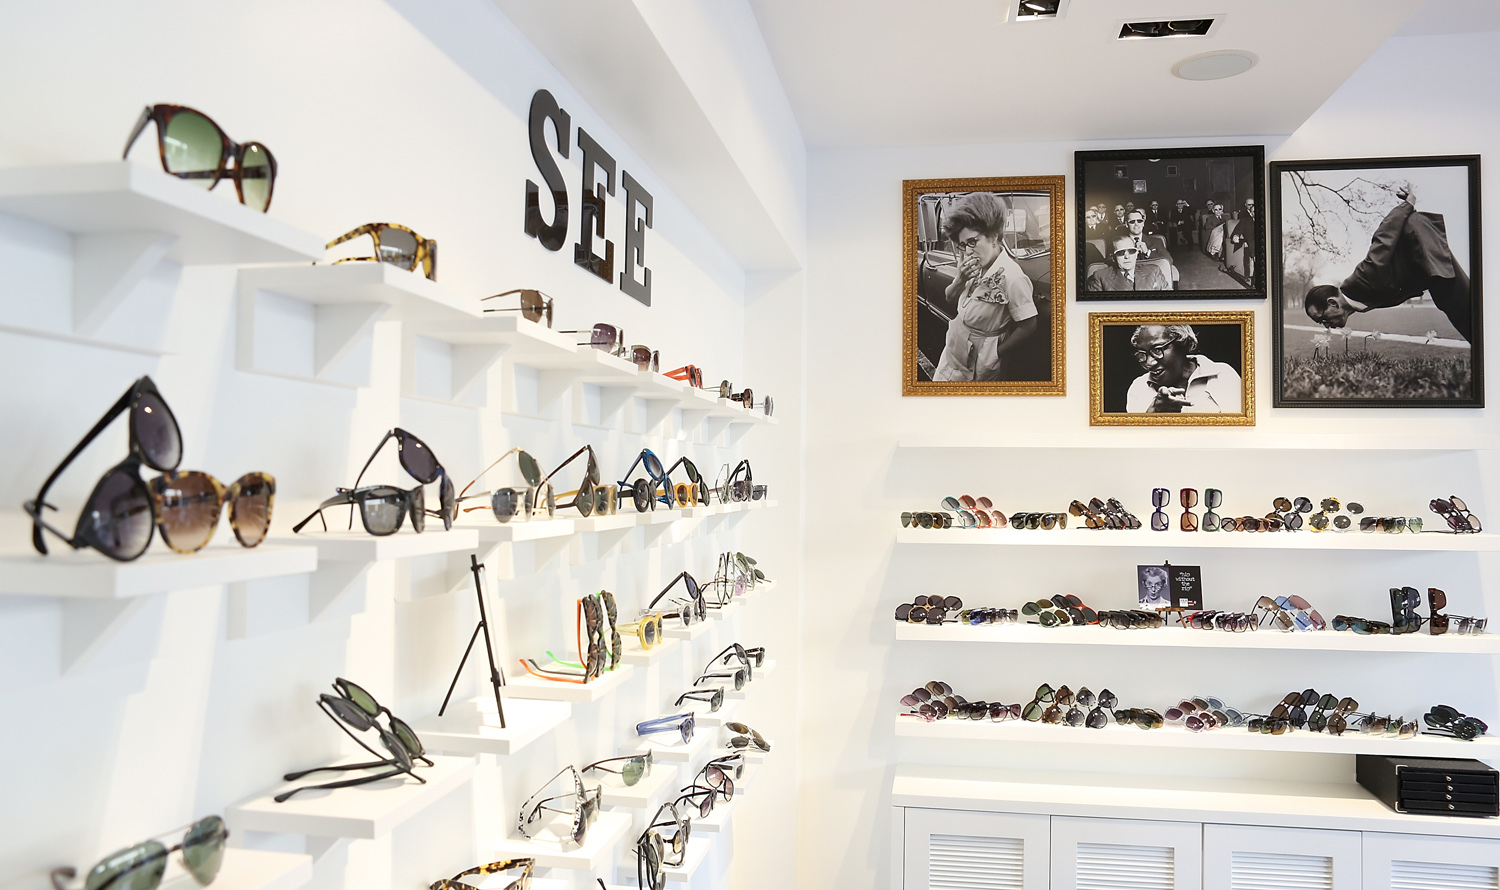 Sunglasses Fashion Island  newport local news biz buzz see eyewear opens at fashion island